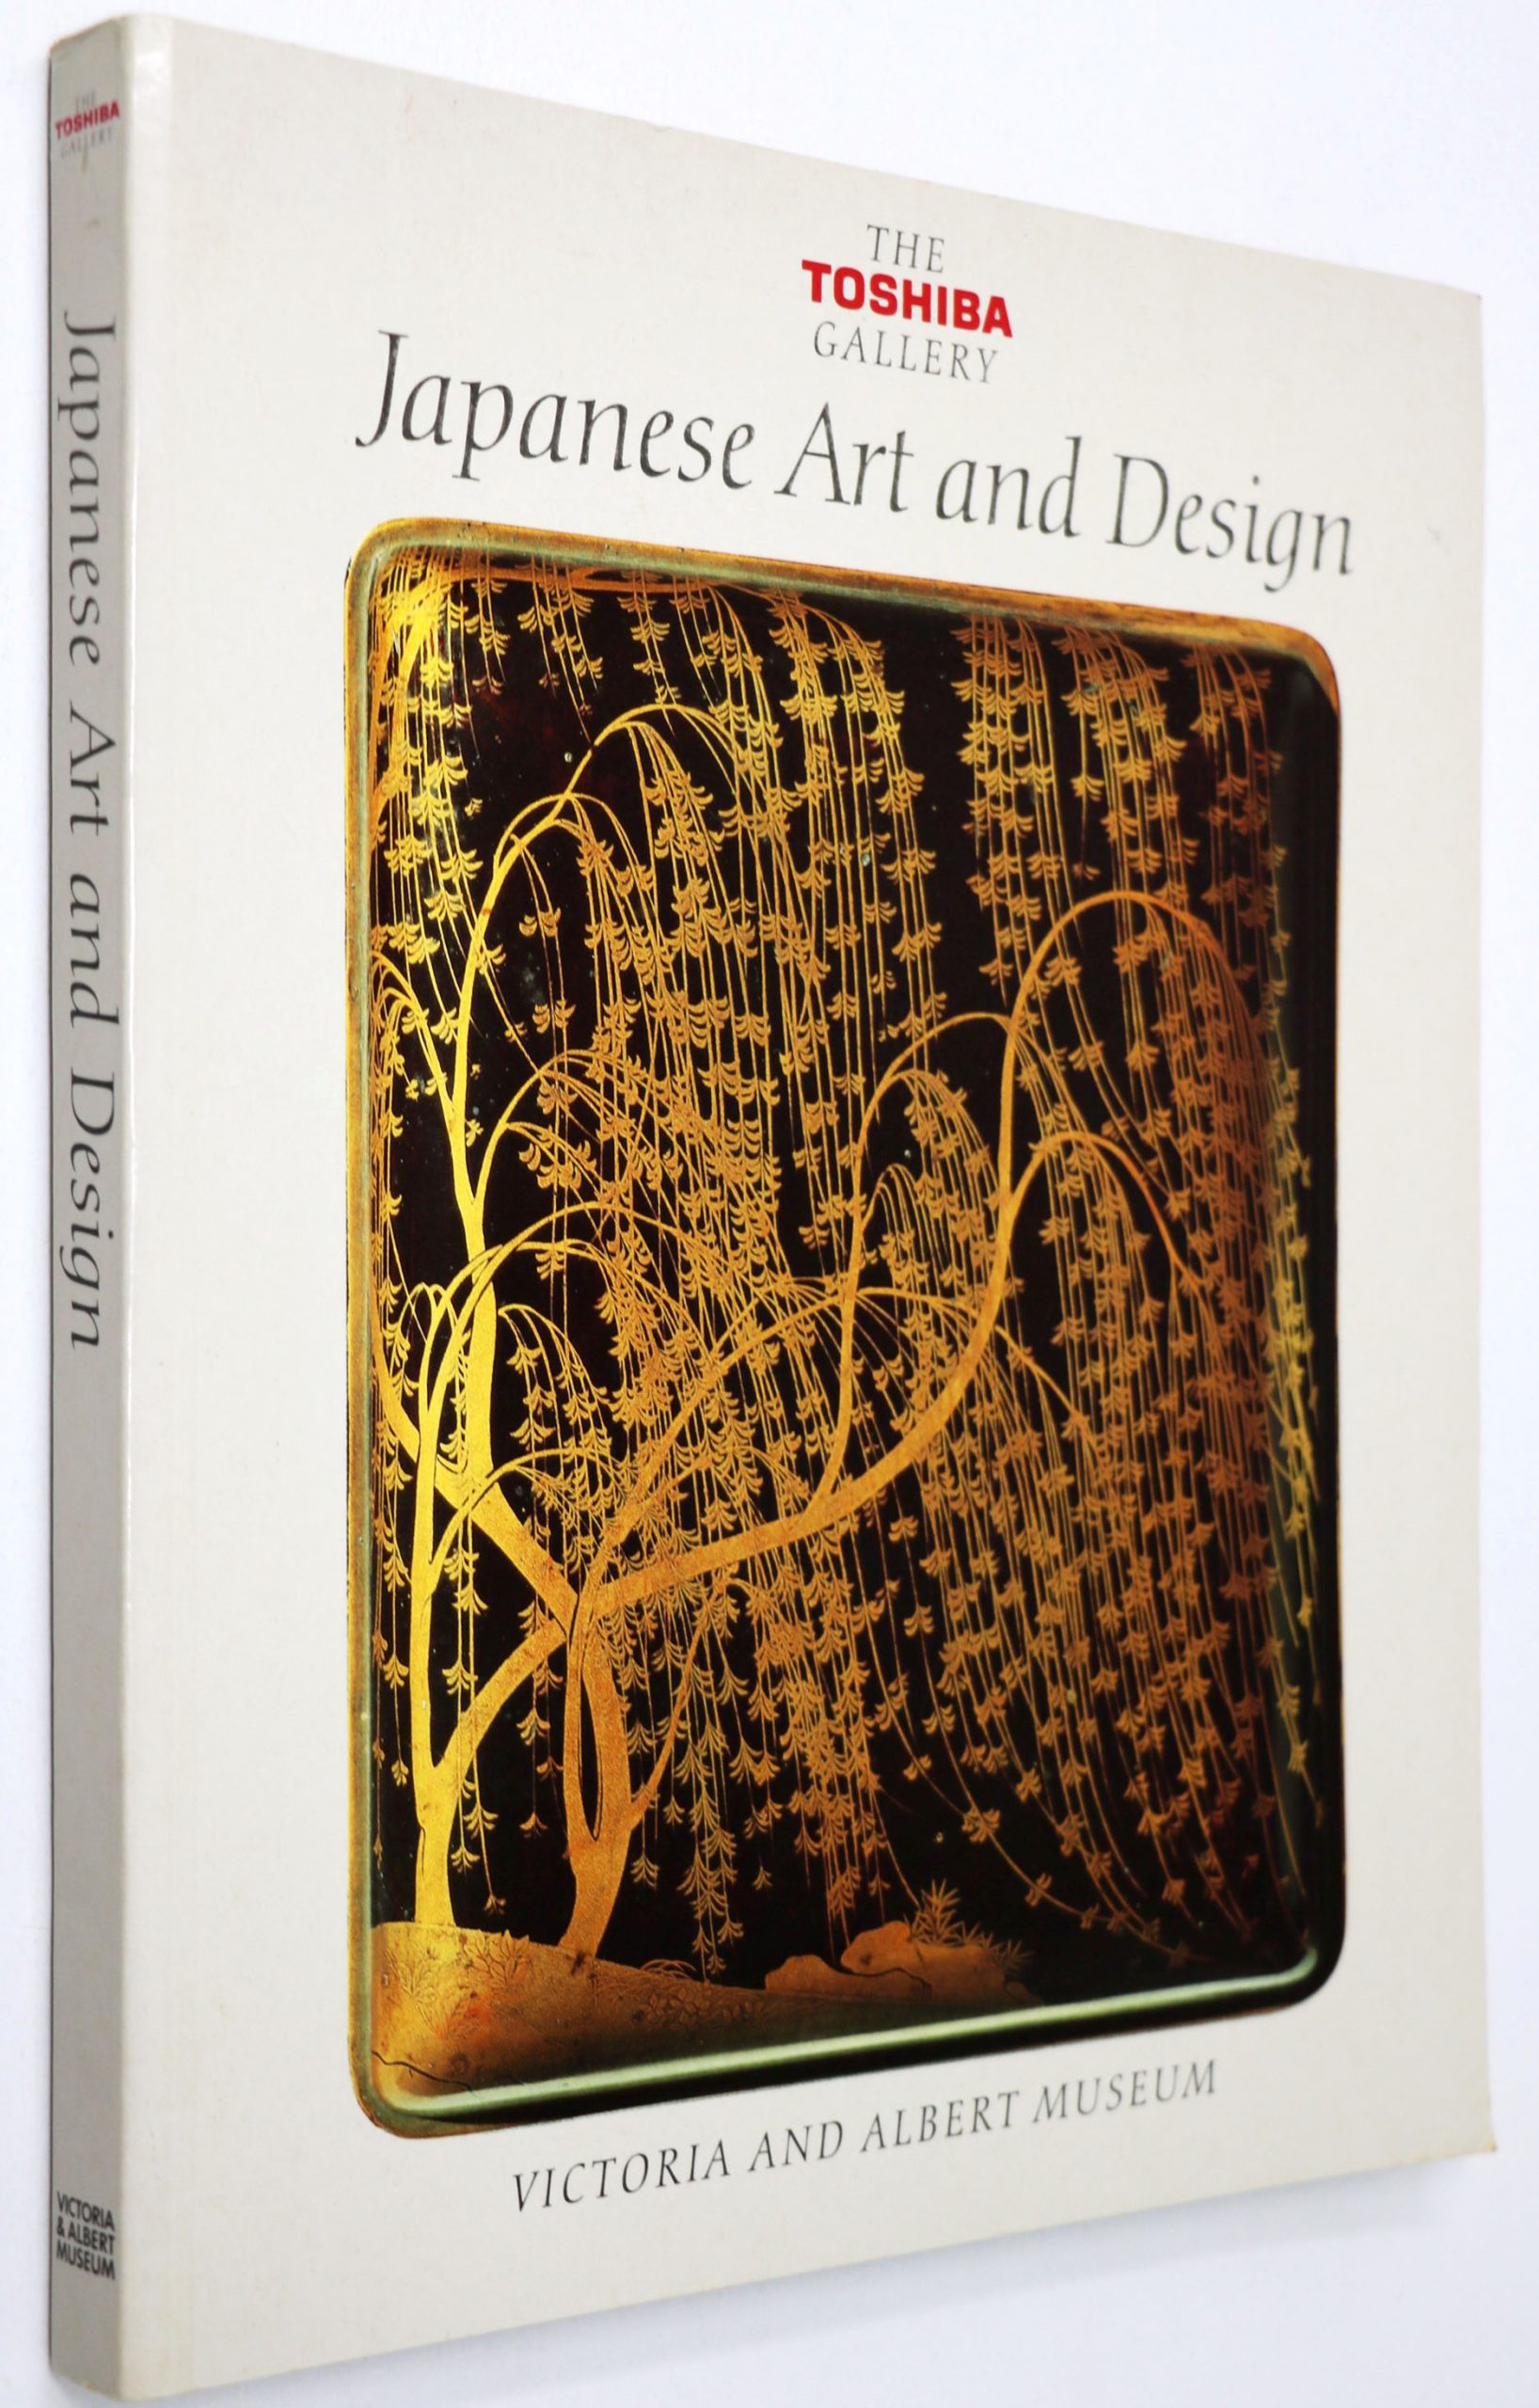 Japanese Art and Design: The Toshiba Gallery